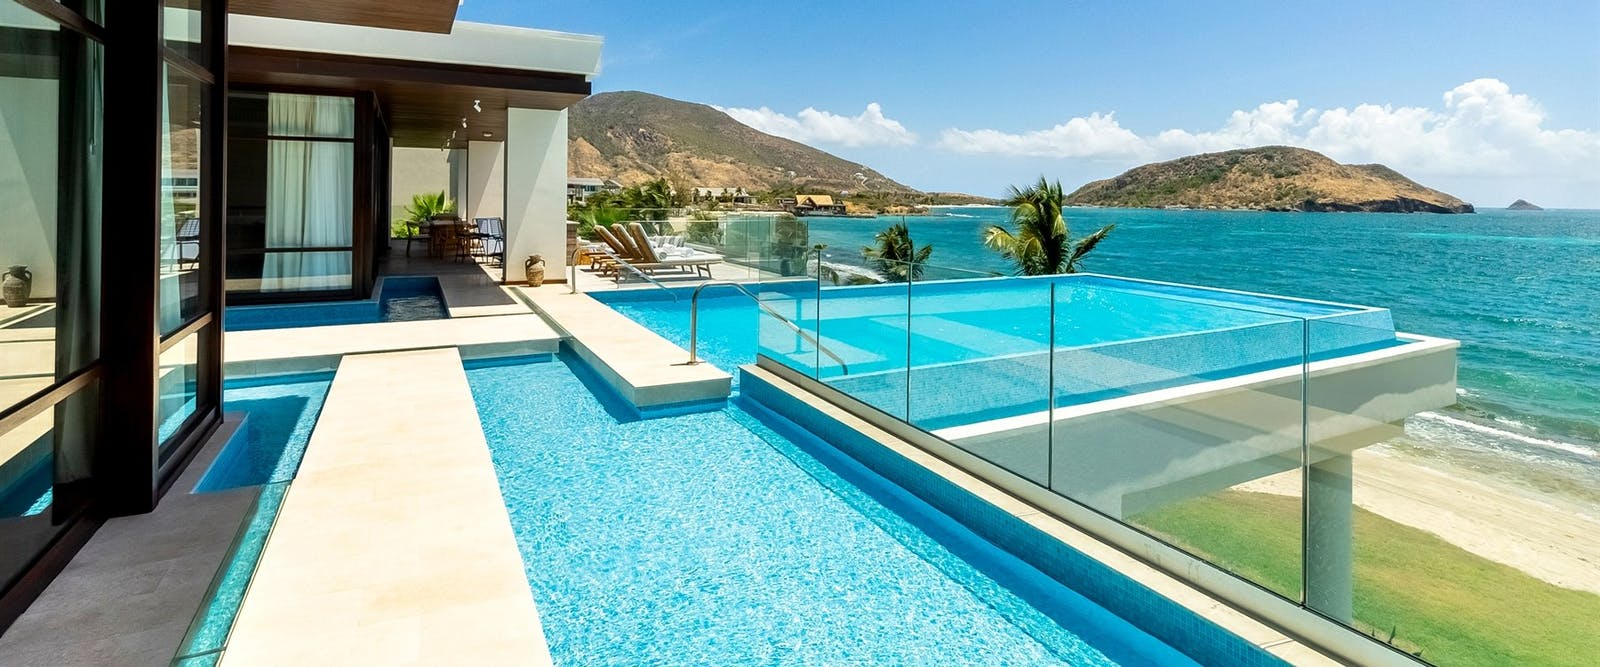 Presidential Villa Pool at Park Hyatt St Kitts